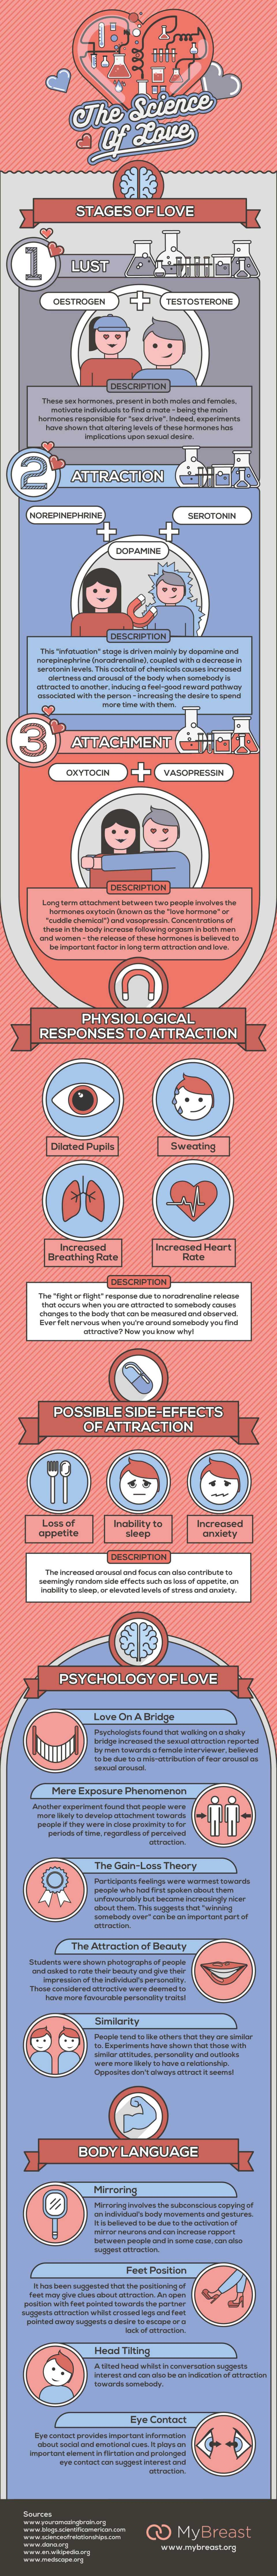 I am in Oxytocin: If Love Had to be Described in Scientific Language! - Infographic